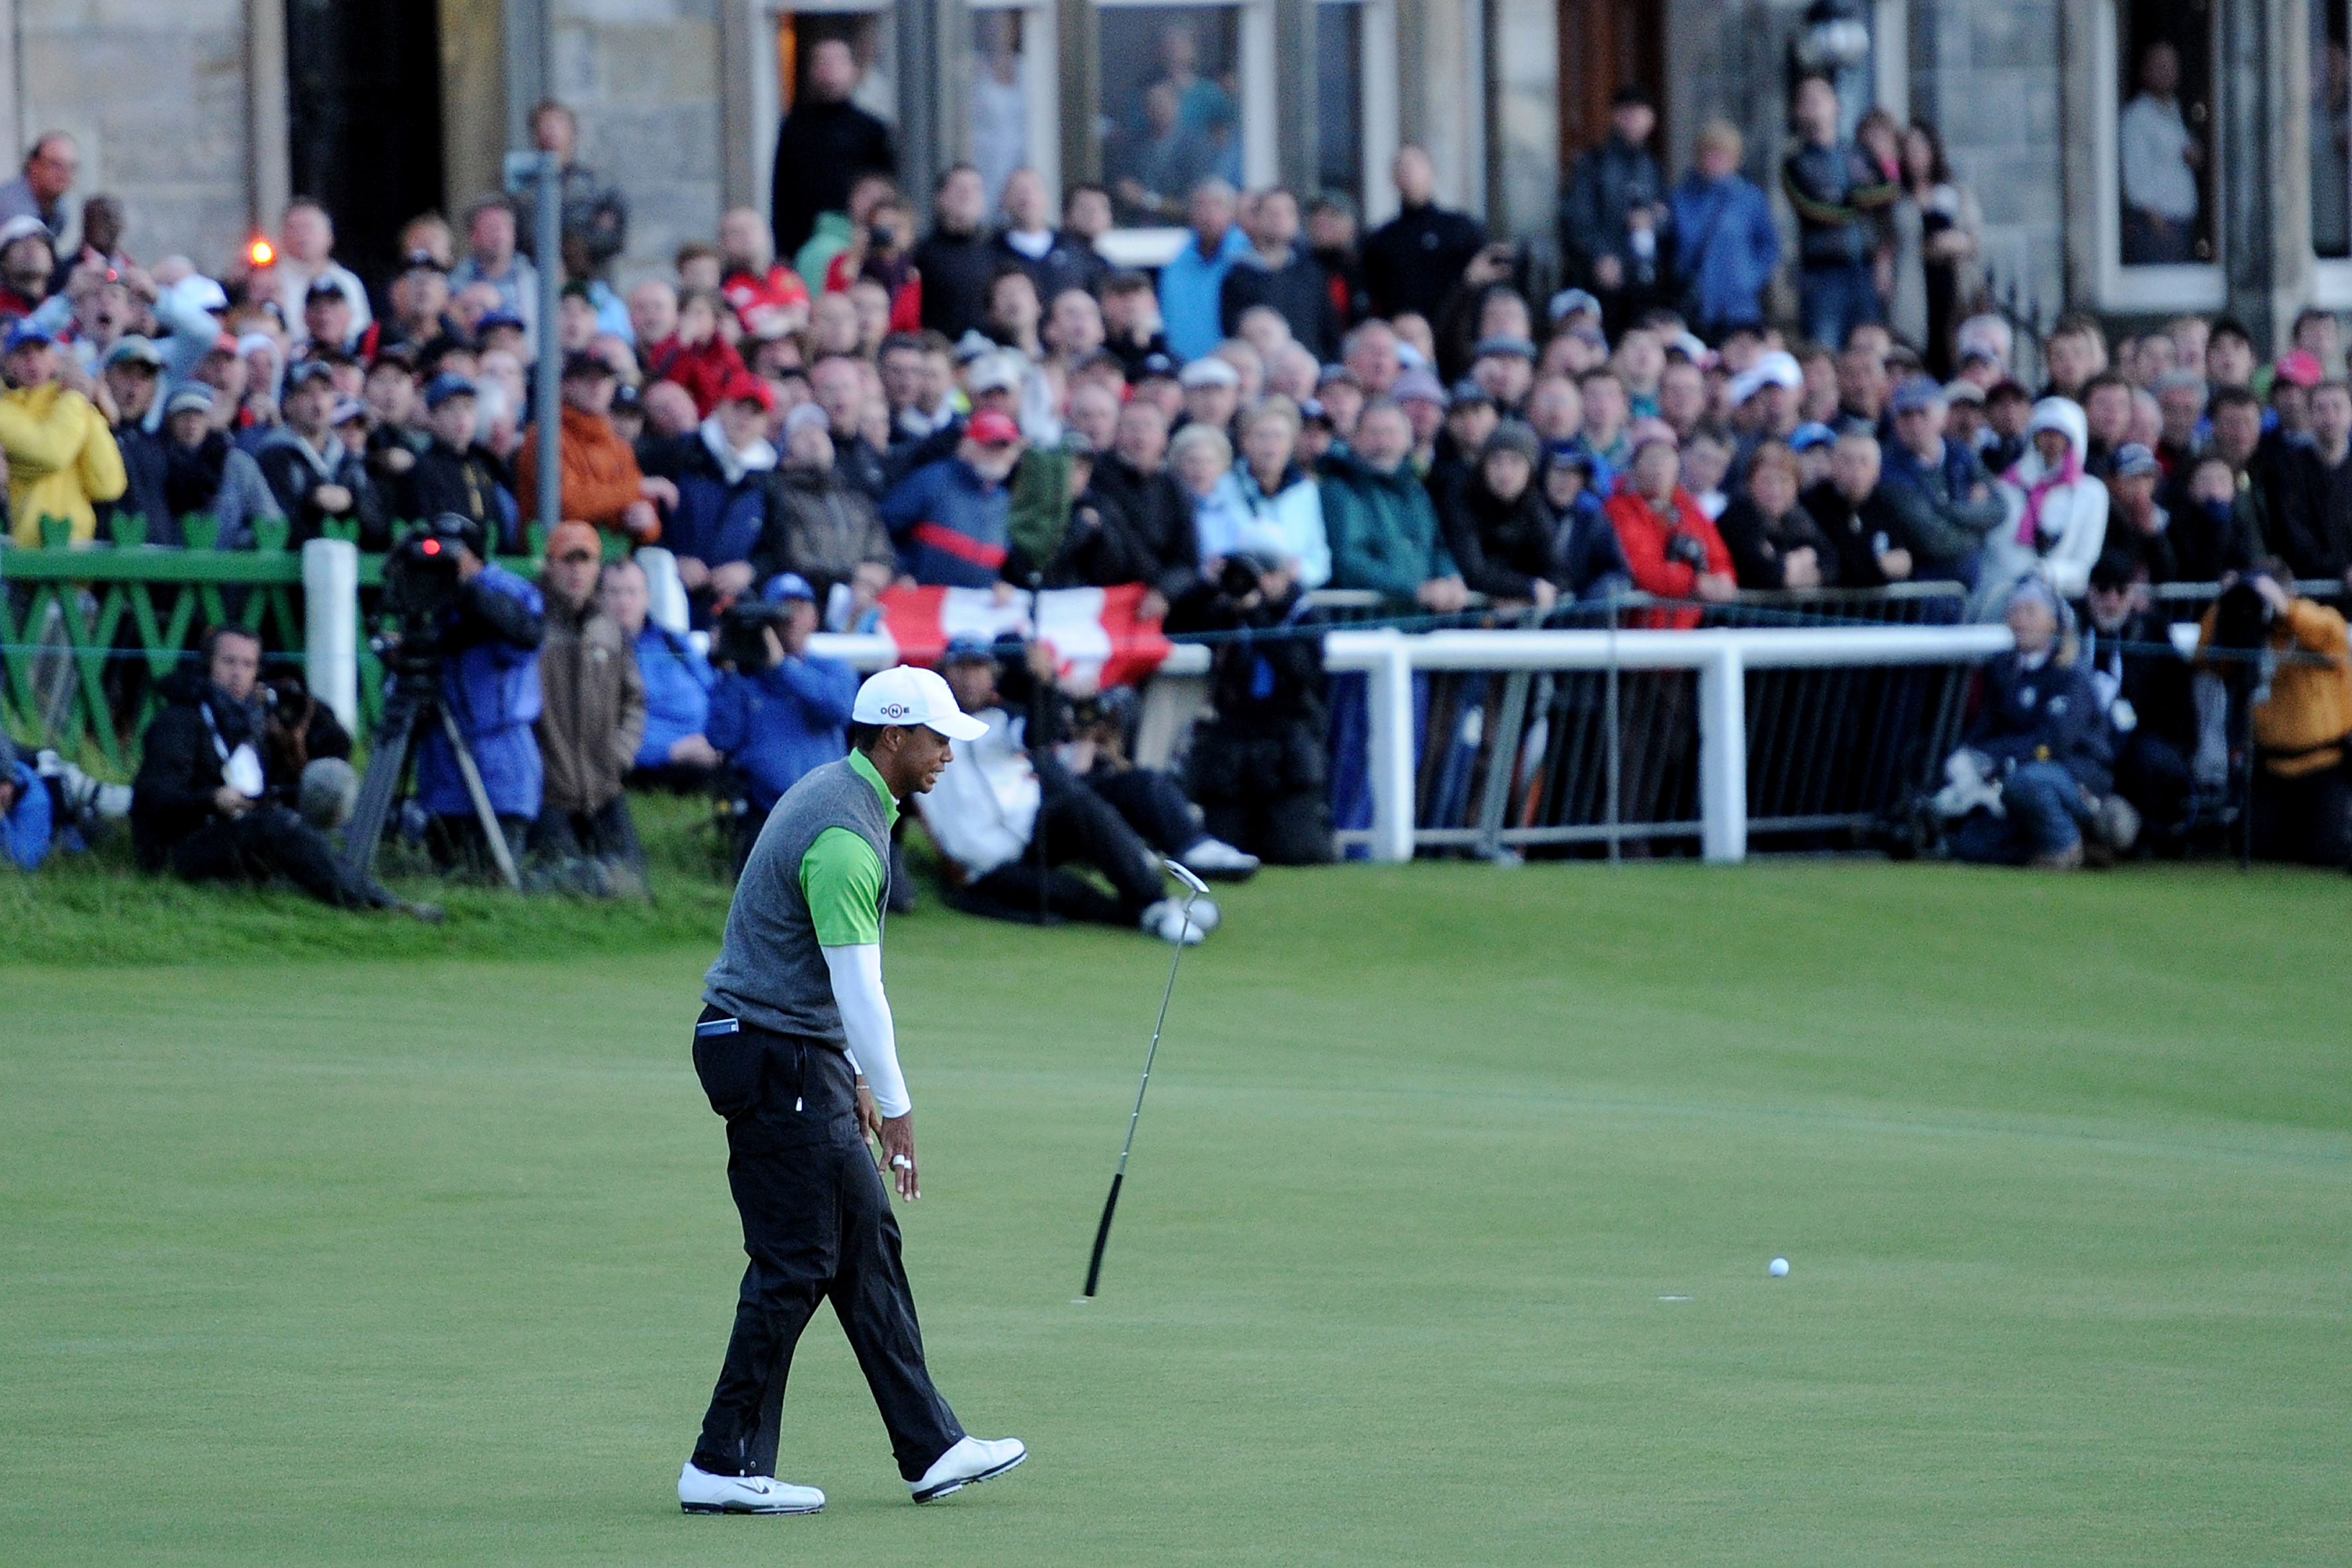 ST ANDREWS, SCOTLAND - JULY 16:  Tiger Woods of the USA tosses his putter after missing an eagle putt on the 18th green during the second round of the 139th Open Championship on the Old Course, St Andrews on July 16, 2010 in St Andrews, Scotland.  (Photo